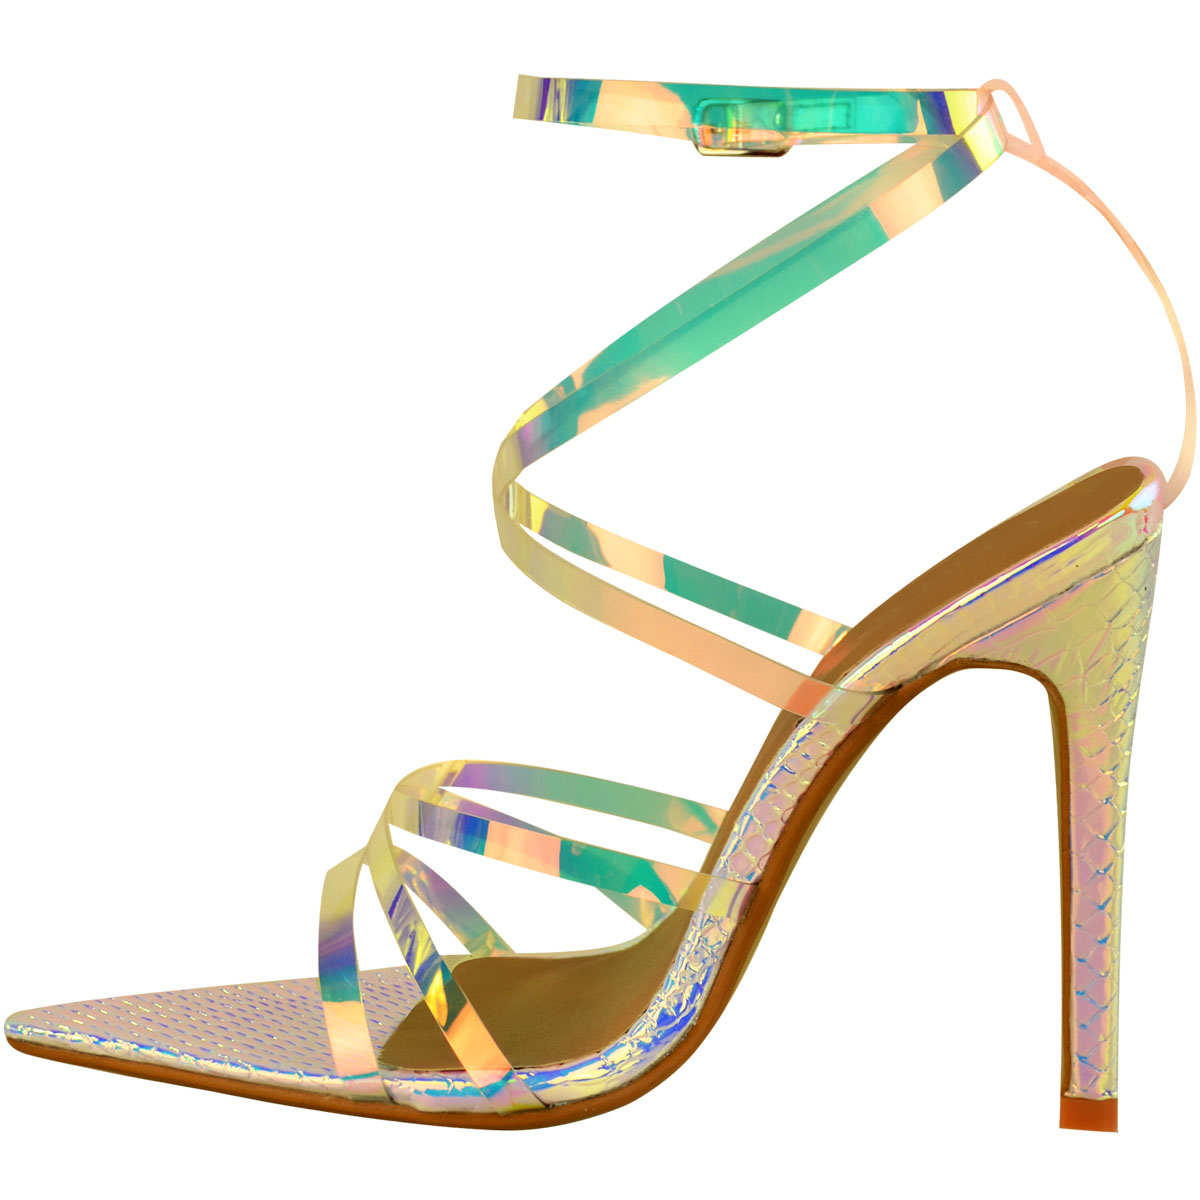 Womens-Silver-Hologram-Perspex-High-Heel-Party-Sandals-Barely-There-Strappy thumbnail 8